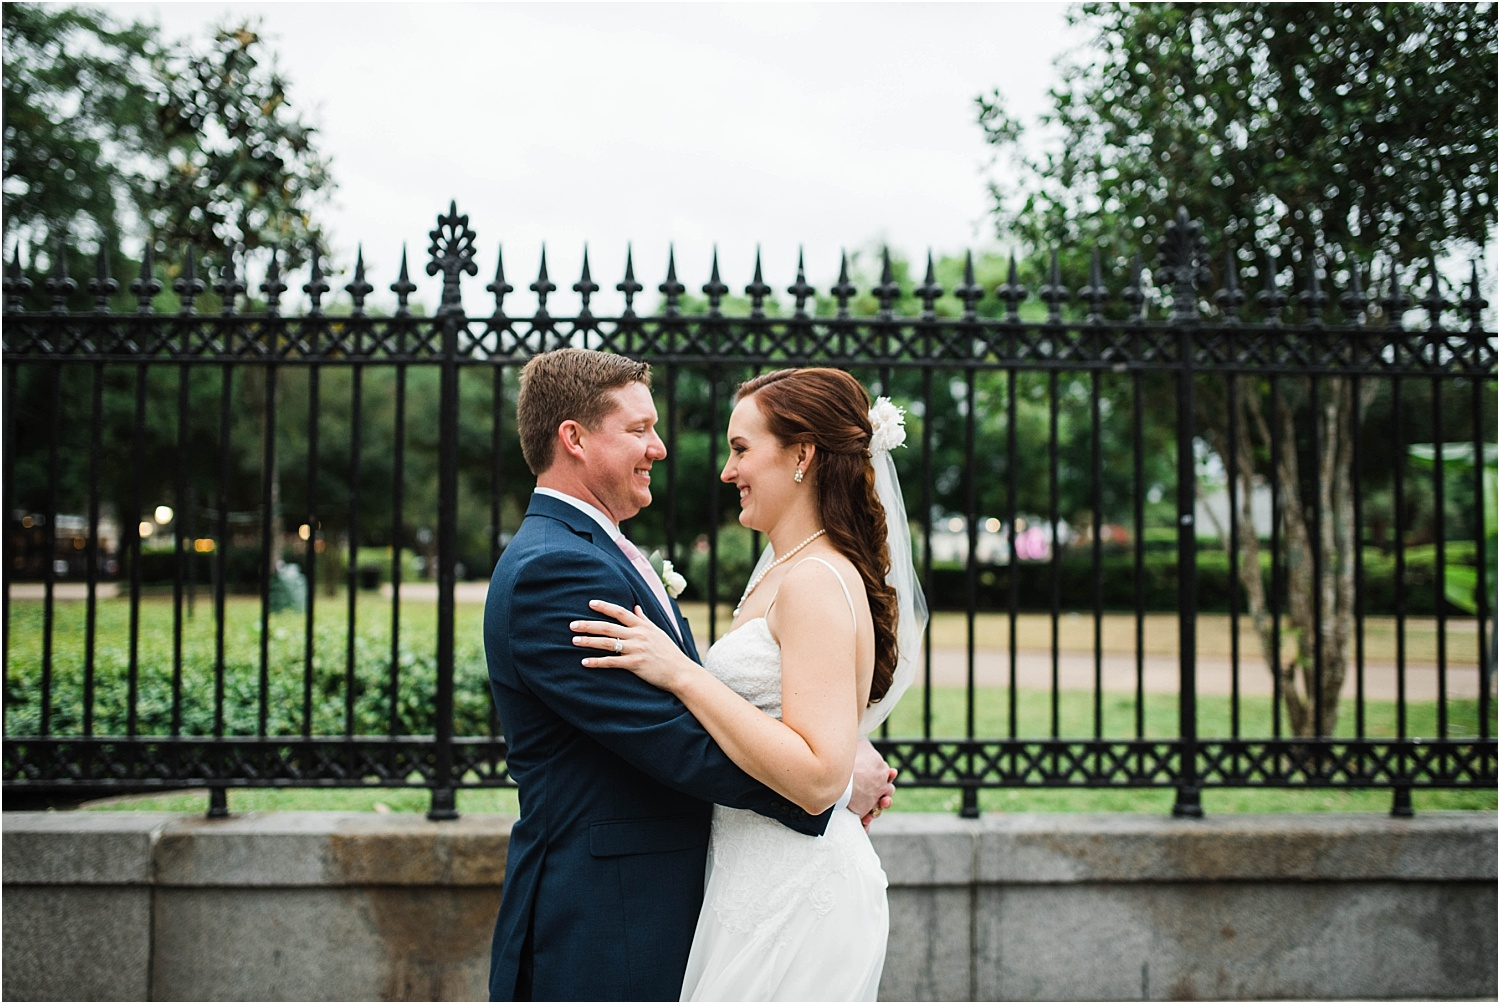 Amy + Chris-Pharmacy-Museum-Muriel's-New-Orleans-Wedding-Photos_Gabby Chapin_Prints_00424_BLOG.jpg